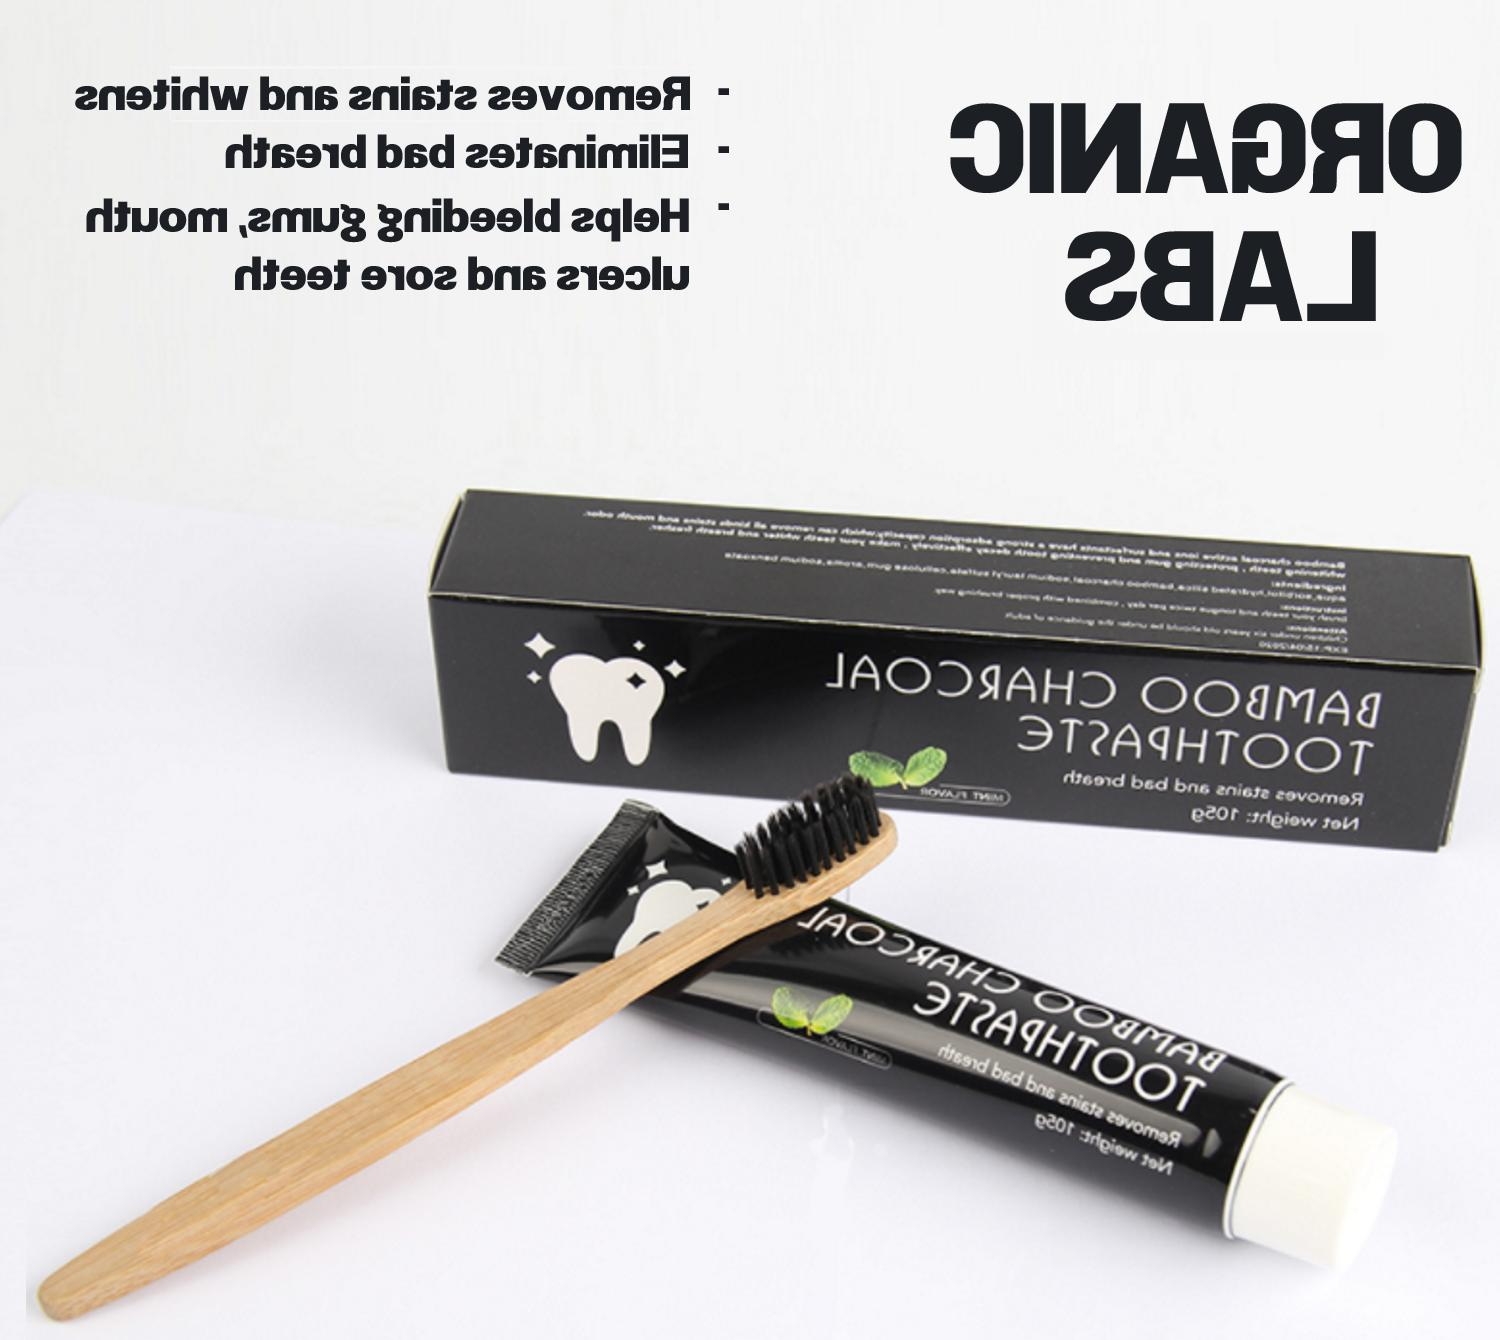 ACTIVATED CHARCOAL TEETH WHITENING CHARCOAL TOOTHPASTE POWDE